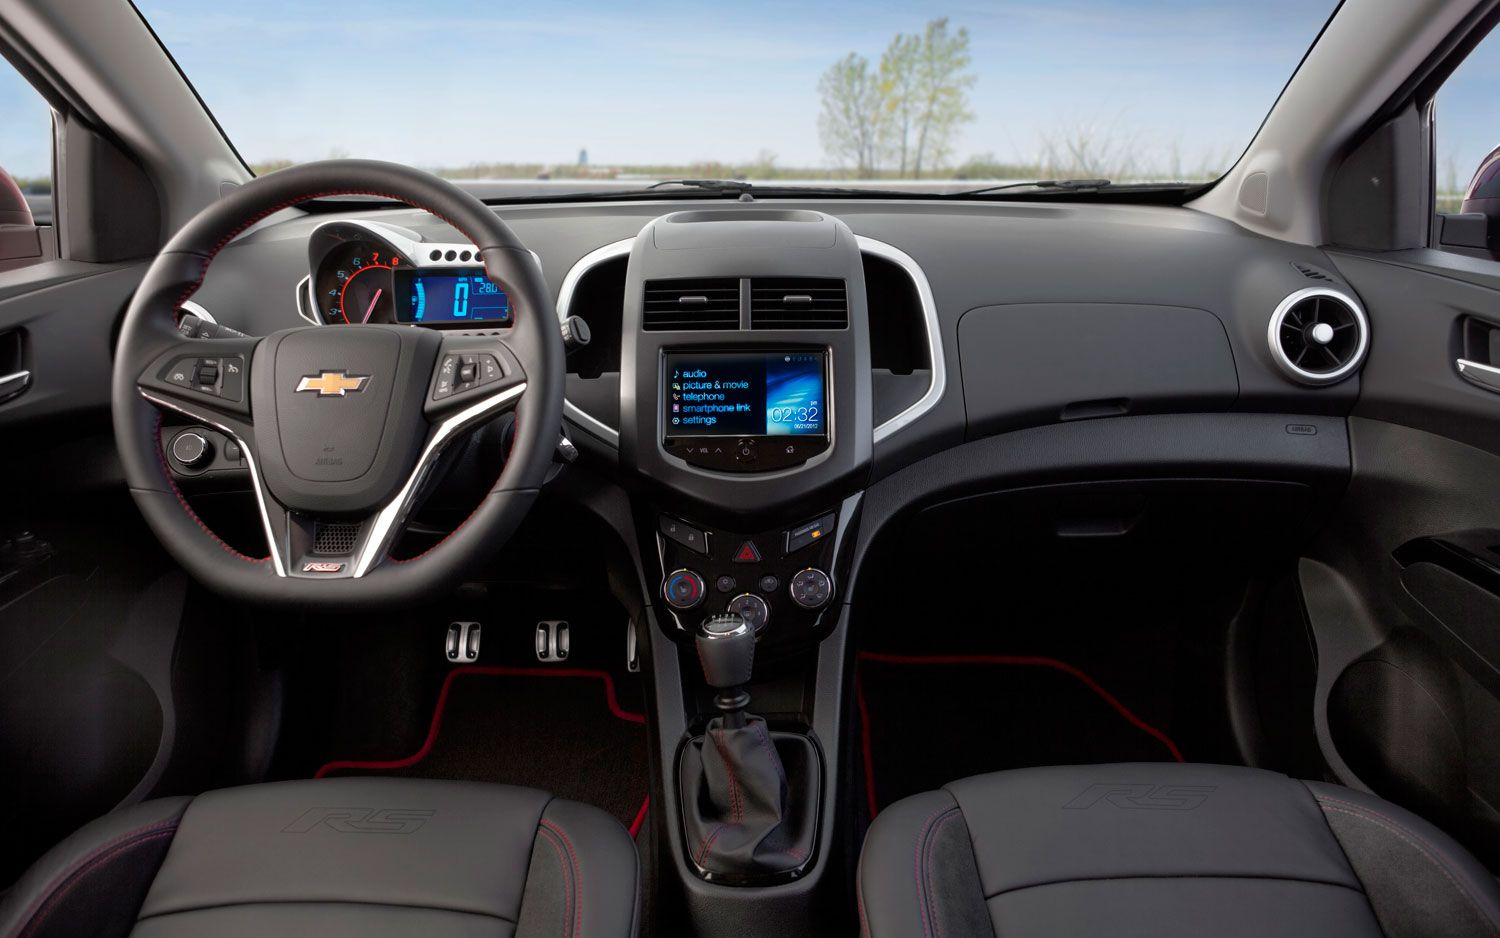 Chevy Sonic RS Interior